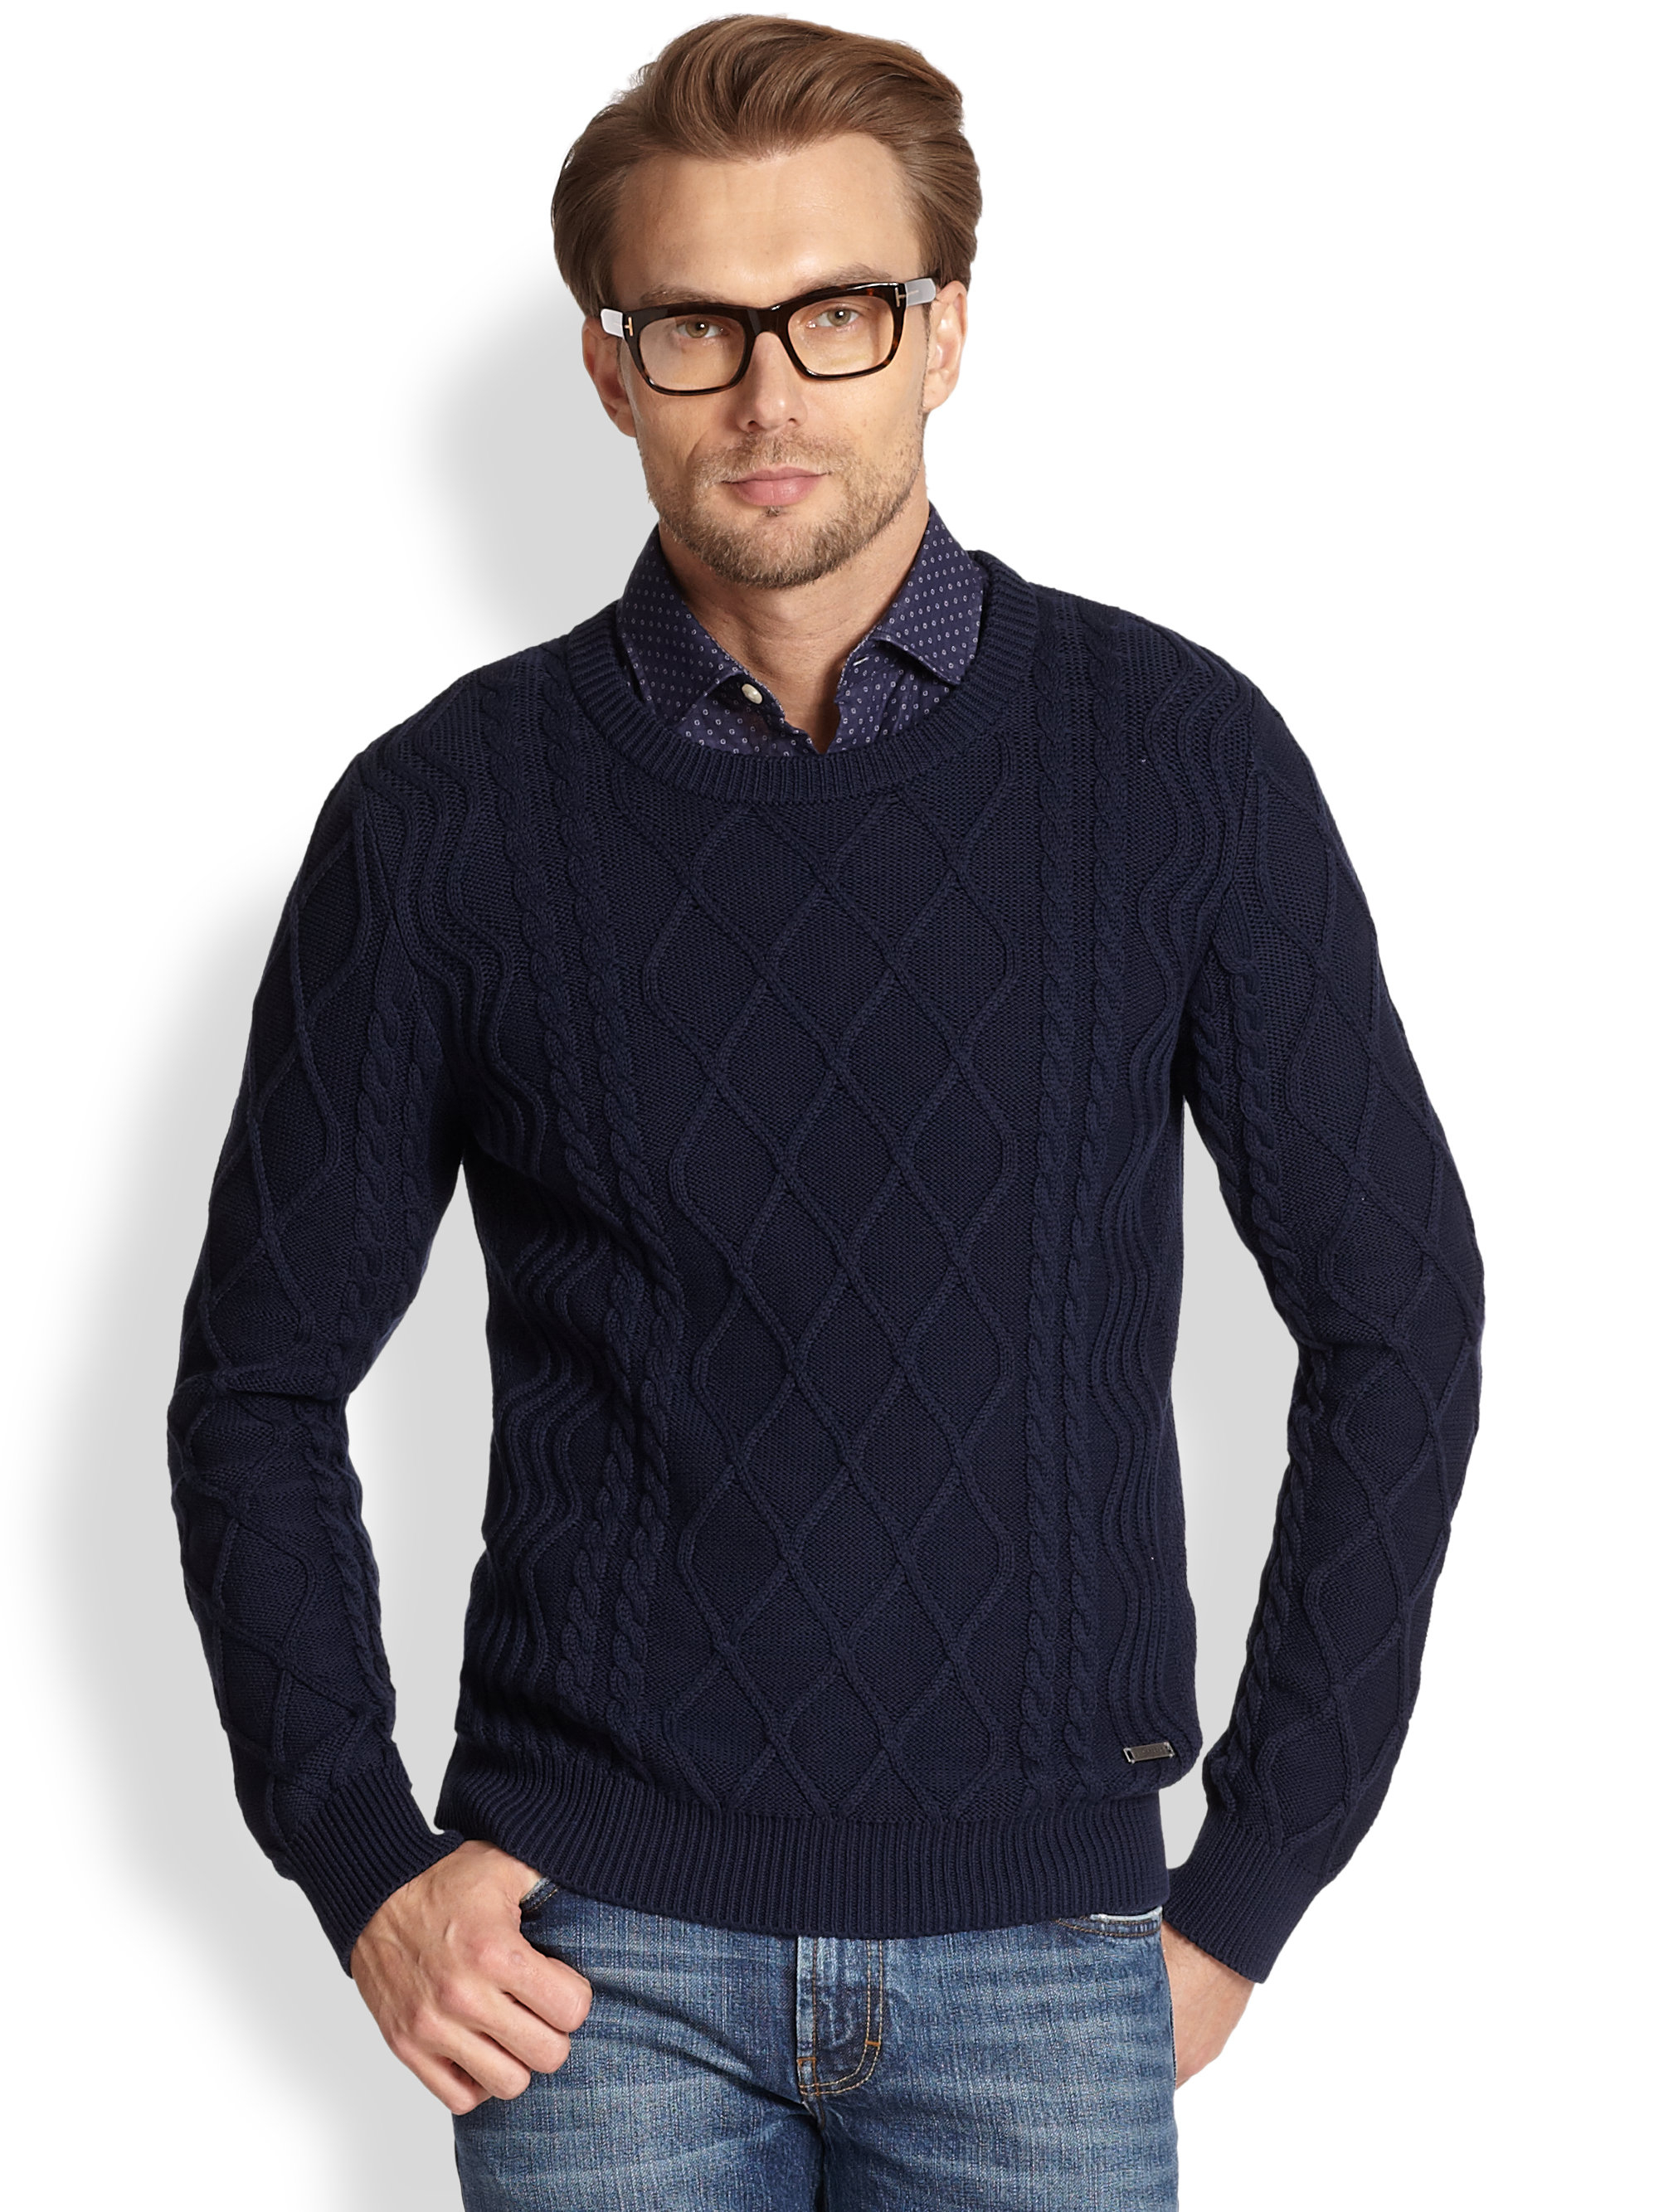 J.lindeberg Benji Sea Cable Knit Sweater in Blue for Men | Lyst